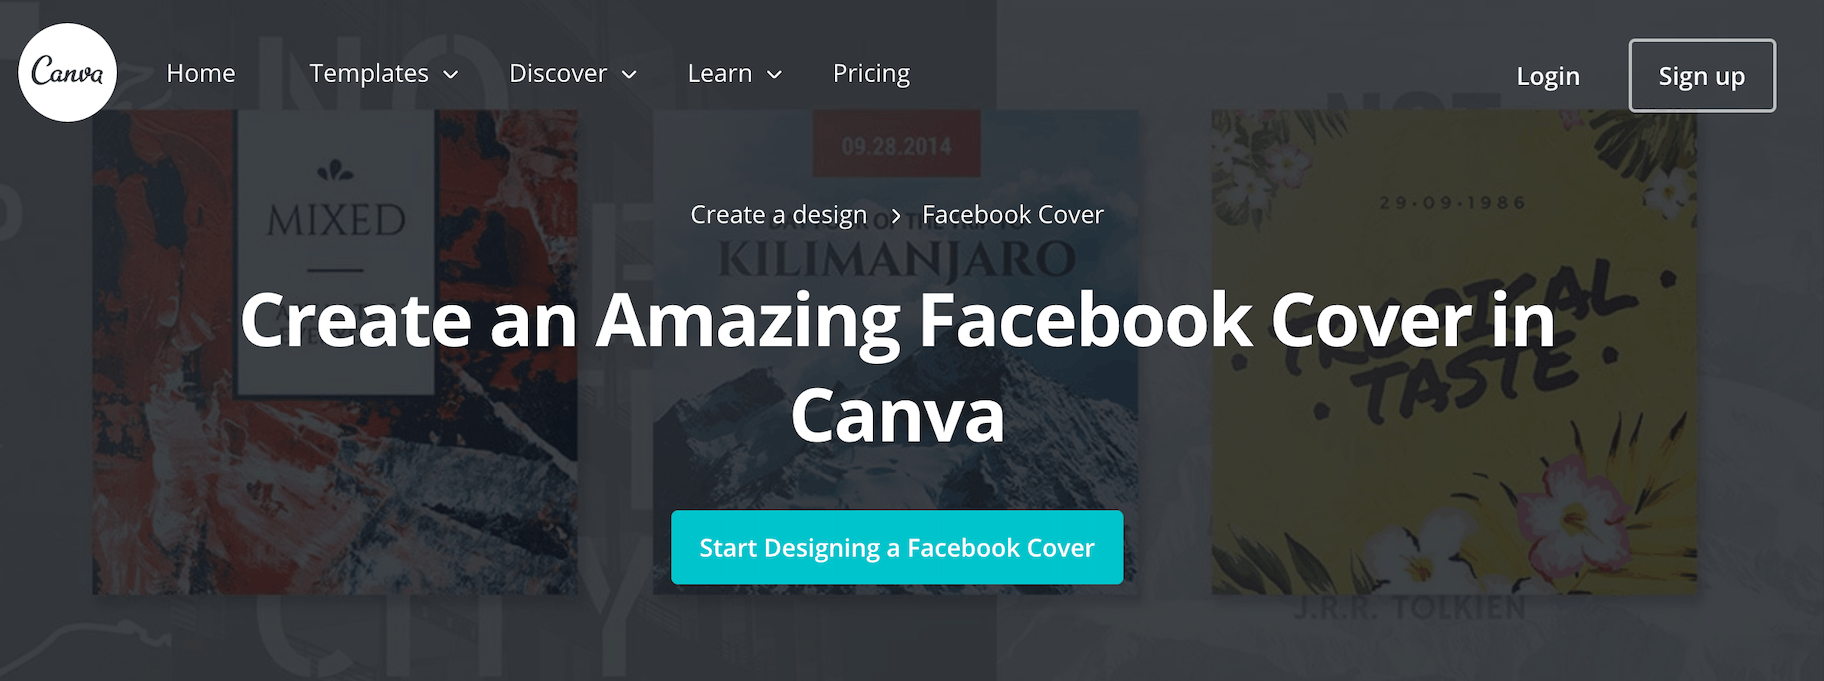 Canva Facebook Cover Photo Maker and Template